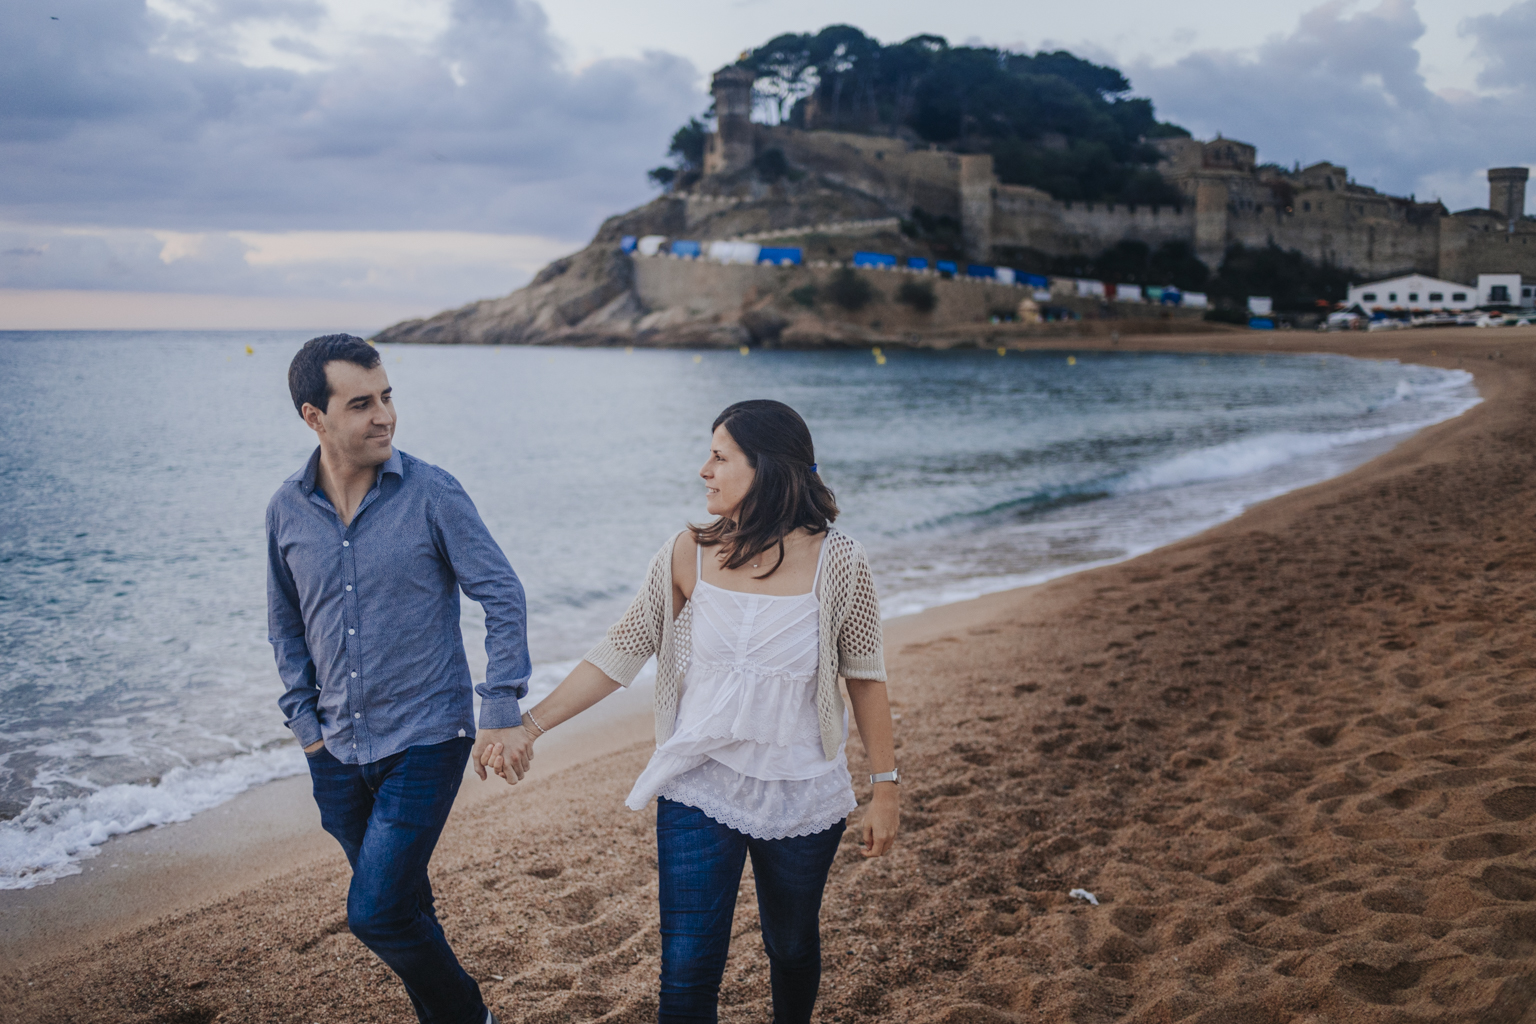 fotógrafo preboda tossa de mar :: save the date costa brava :: fotógrafo de bodas girona :: costa brava wedding photographer :: Barcelona photographer :: Fotógrafo de pareja Girona